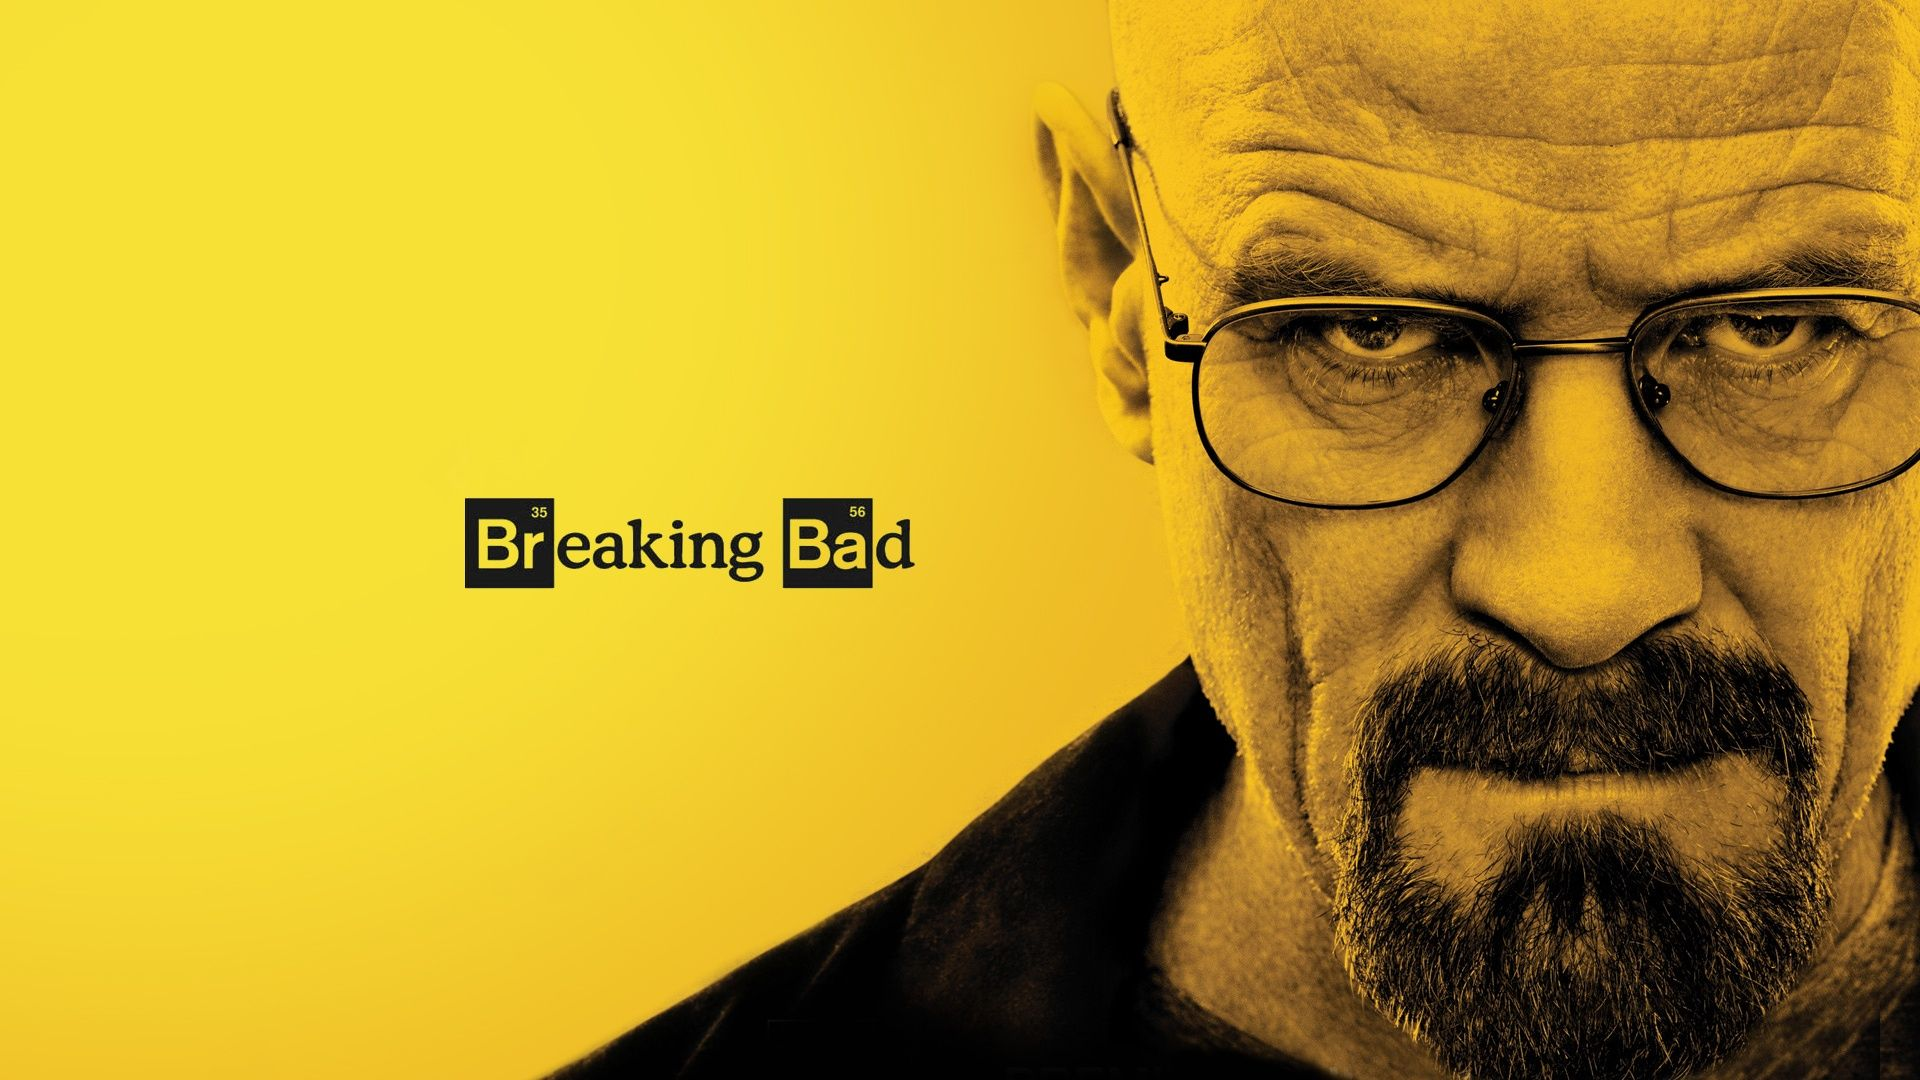 Gradly breaking bad death toll infographic breaking bad is over and walter whites fate is revealed many had their expectations and leading up to the finale triyng to decipher the title felina urtaz Image collections